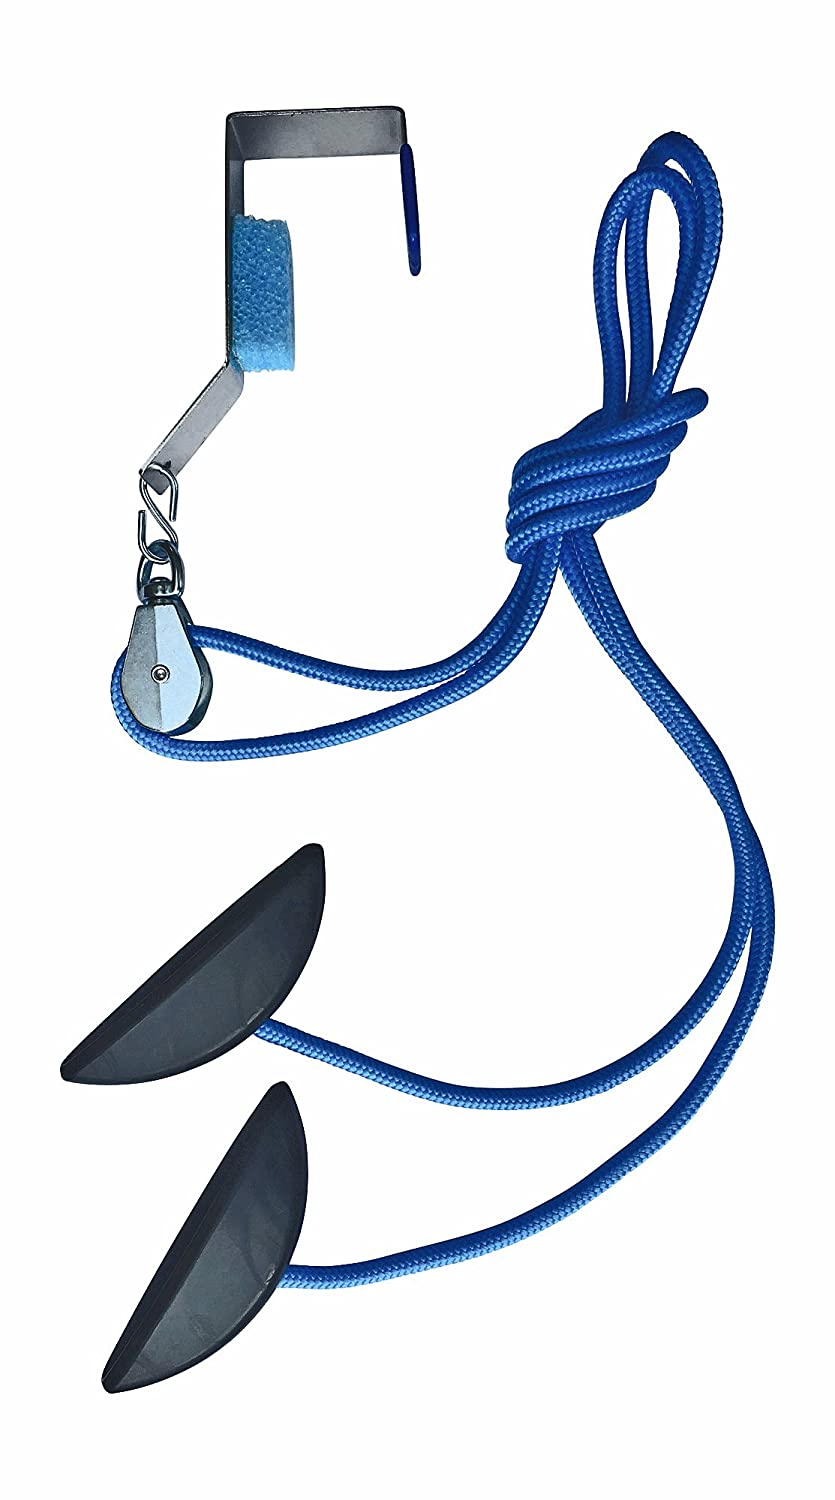 Shoulder Pulley System, Over The Door Metal Bracket, Therapists Choice for Physical Therapy